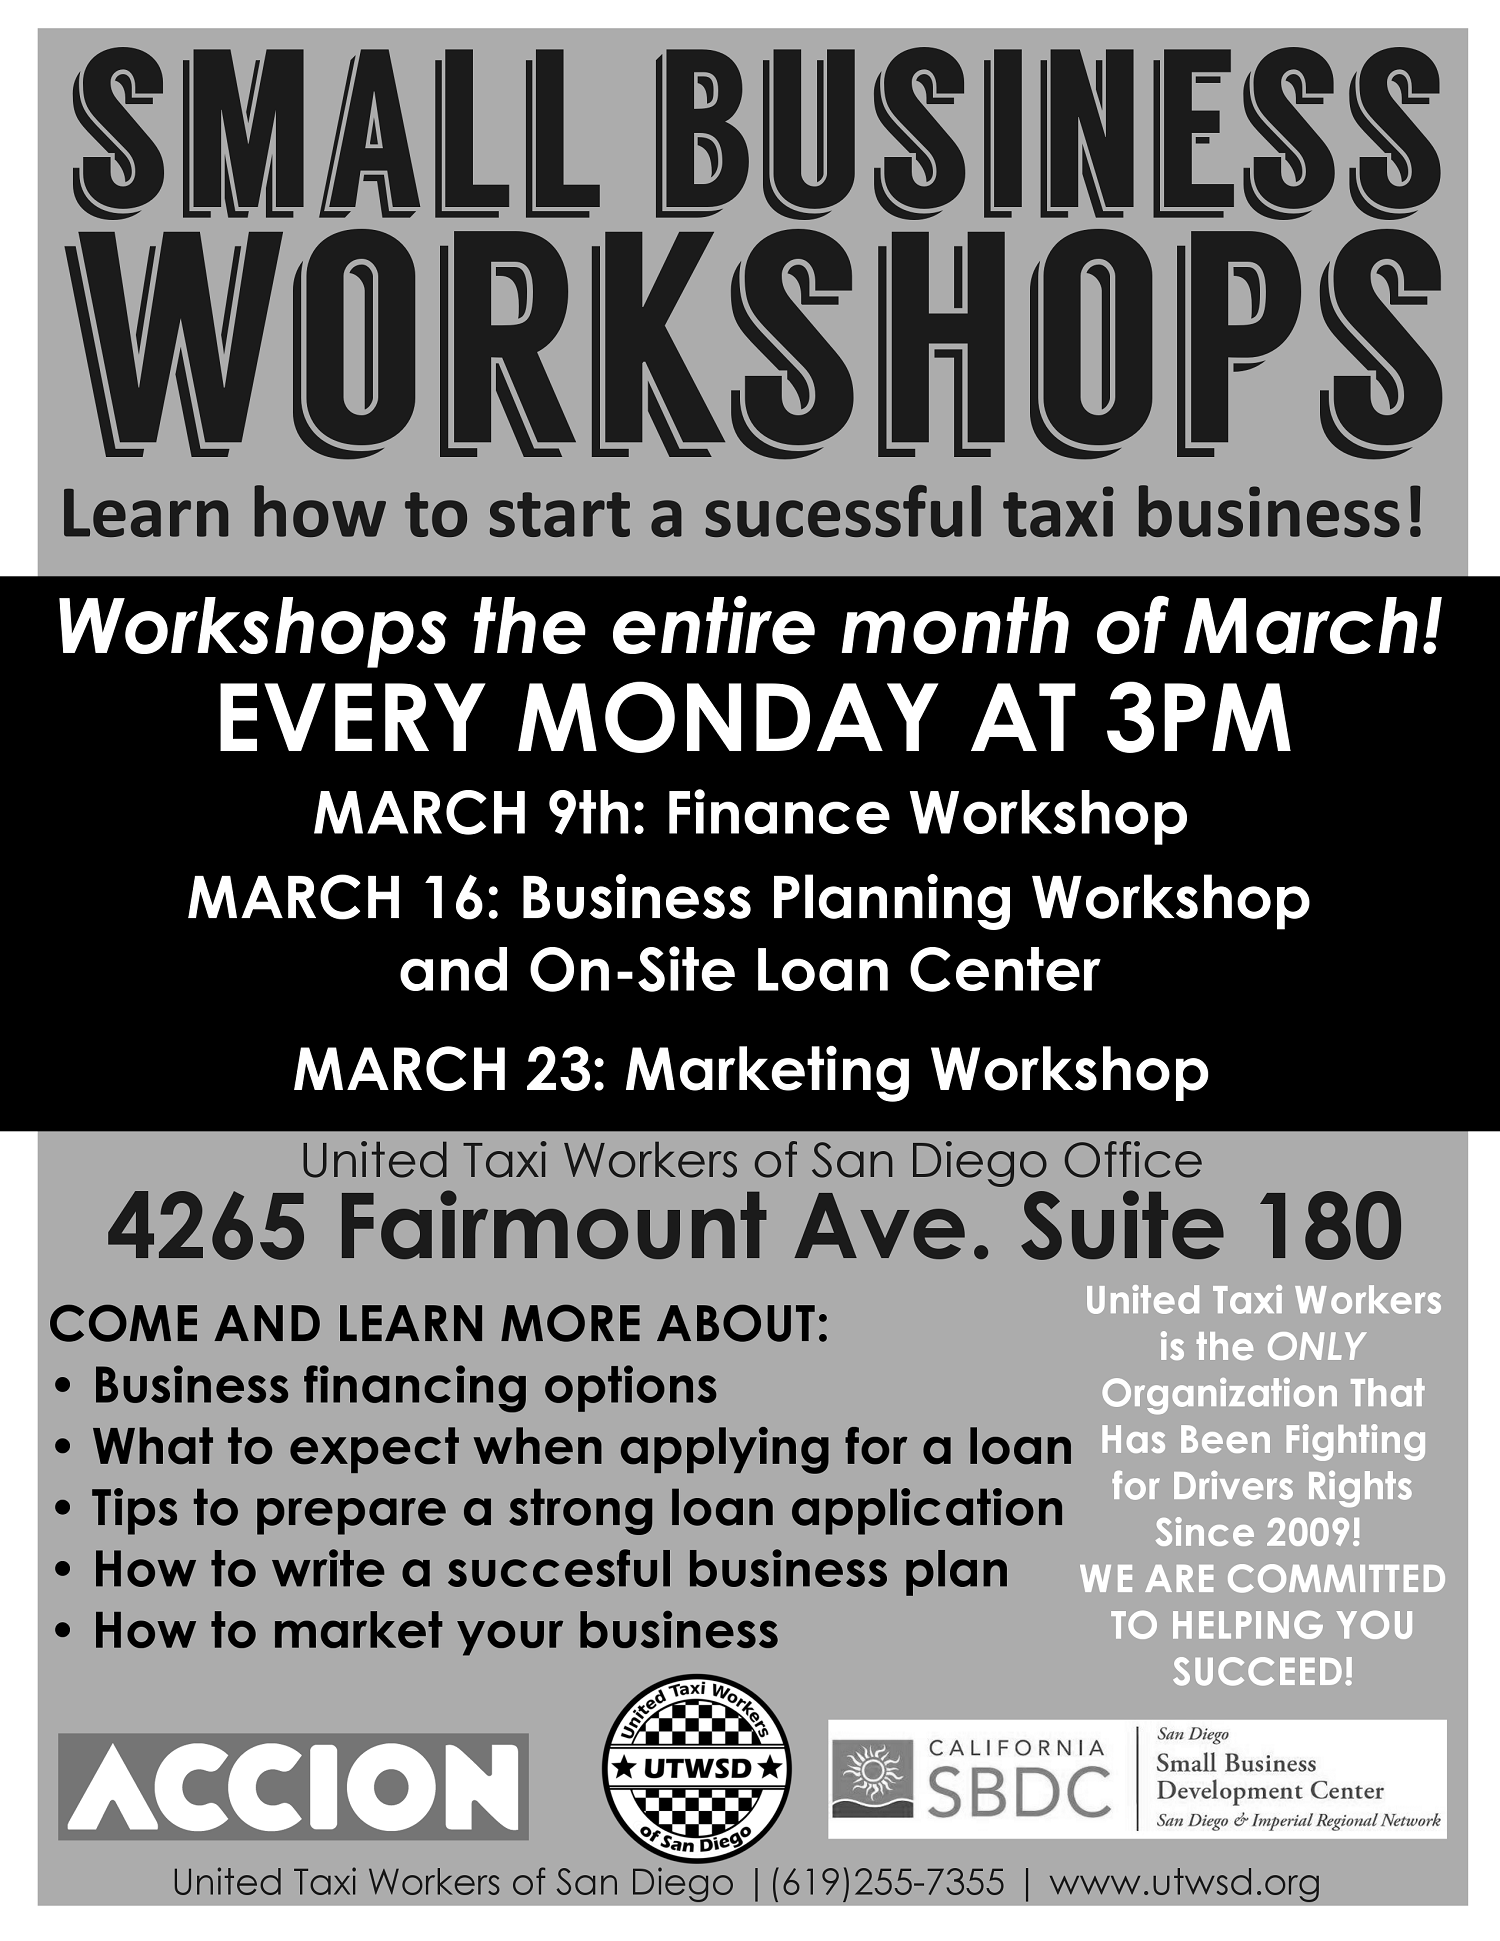 Small Business Workshop Flyer